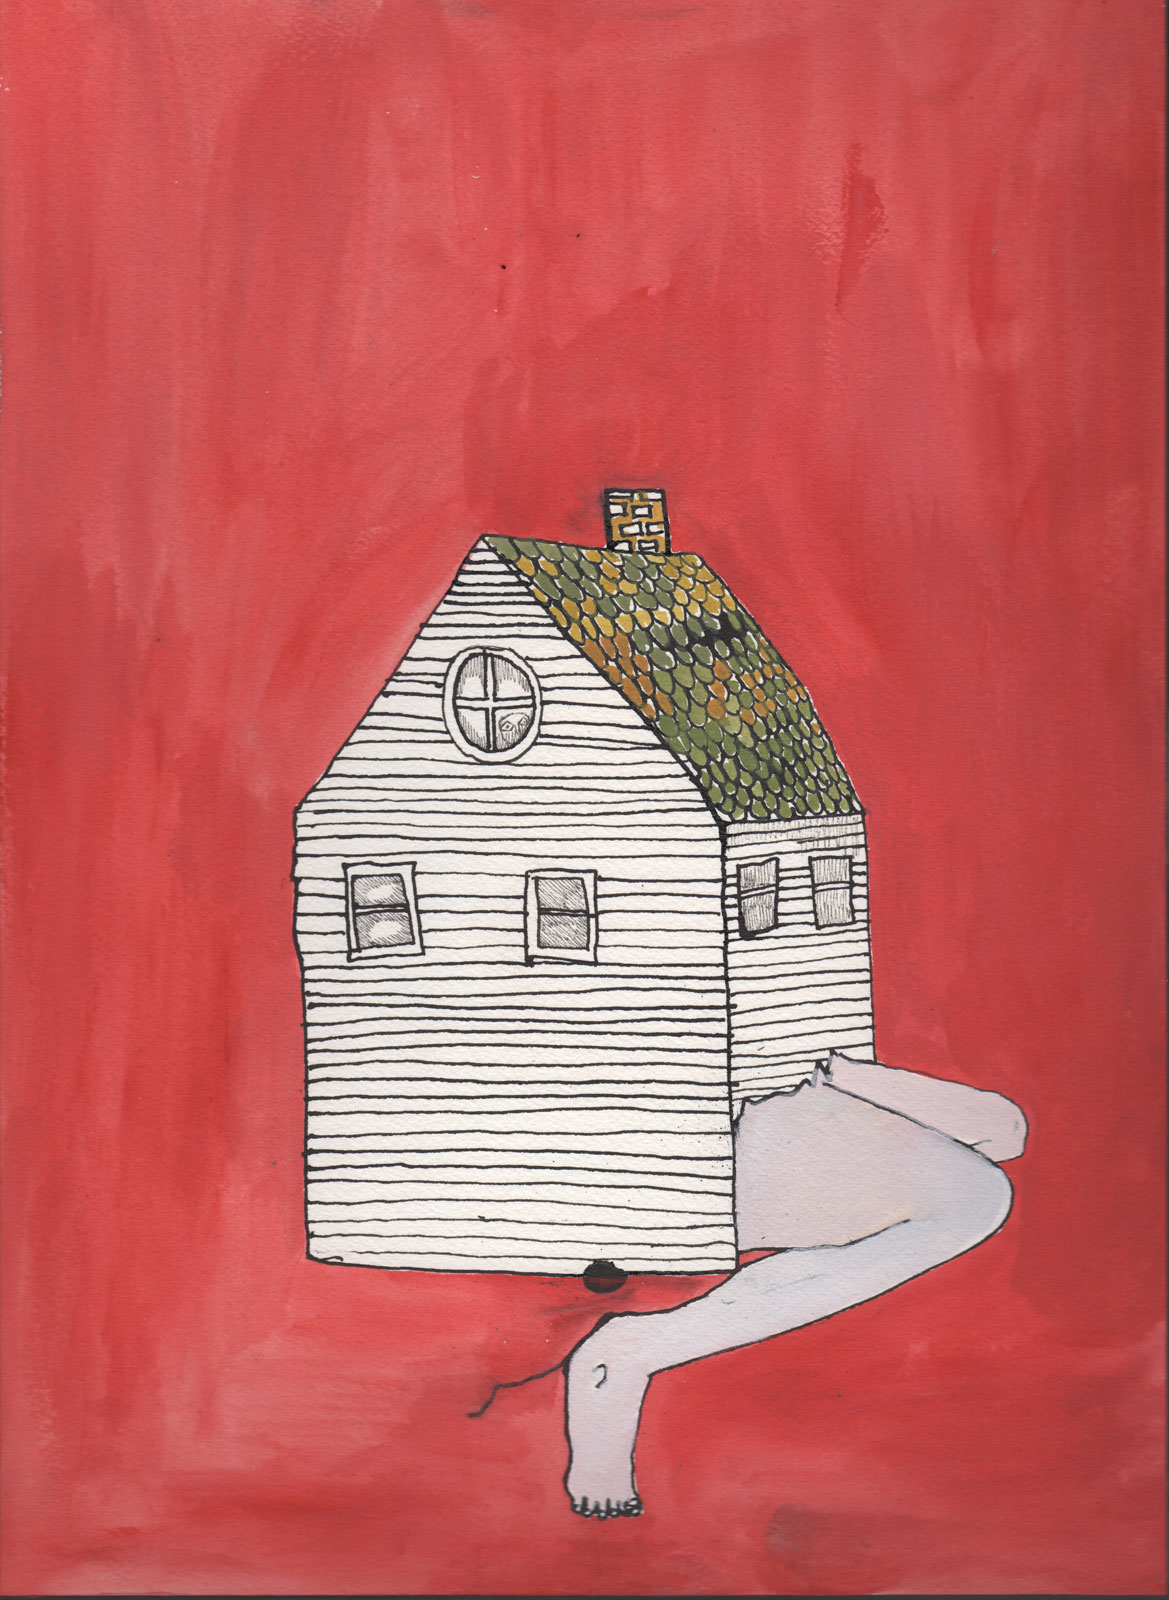 <i>Last House on the Left</i> (2014), pen, ink, and watercolor, 10˝ × 14˝